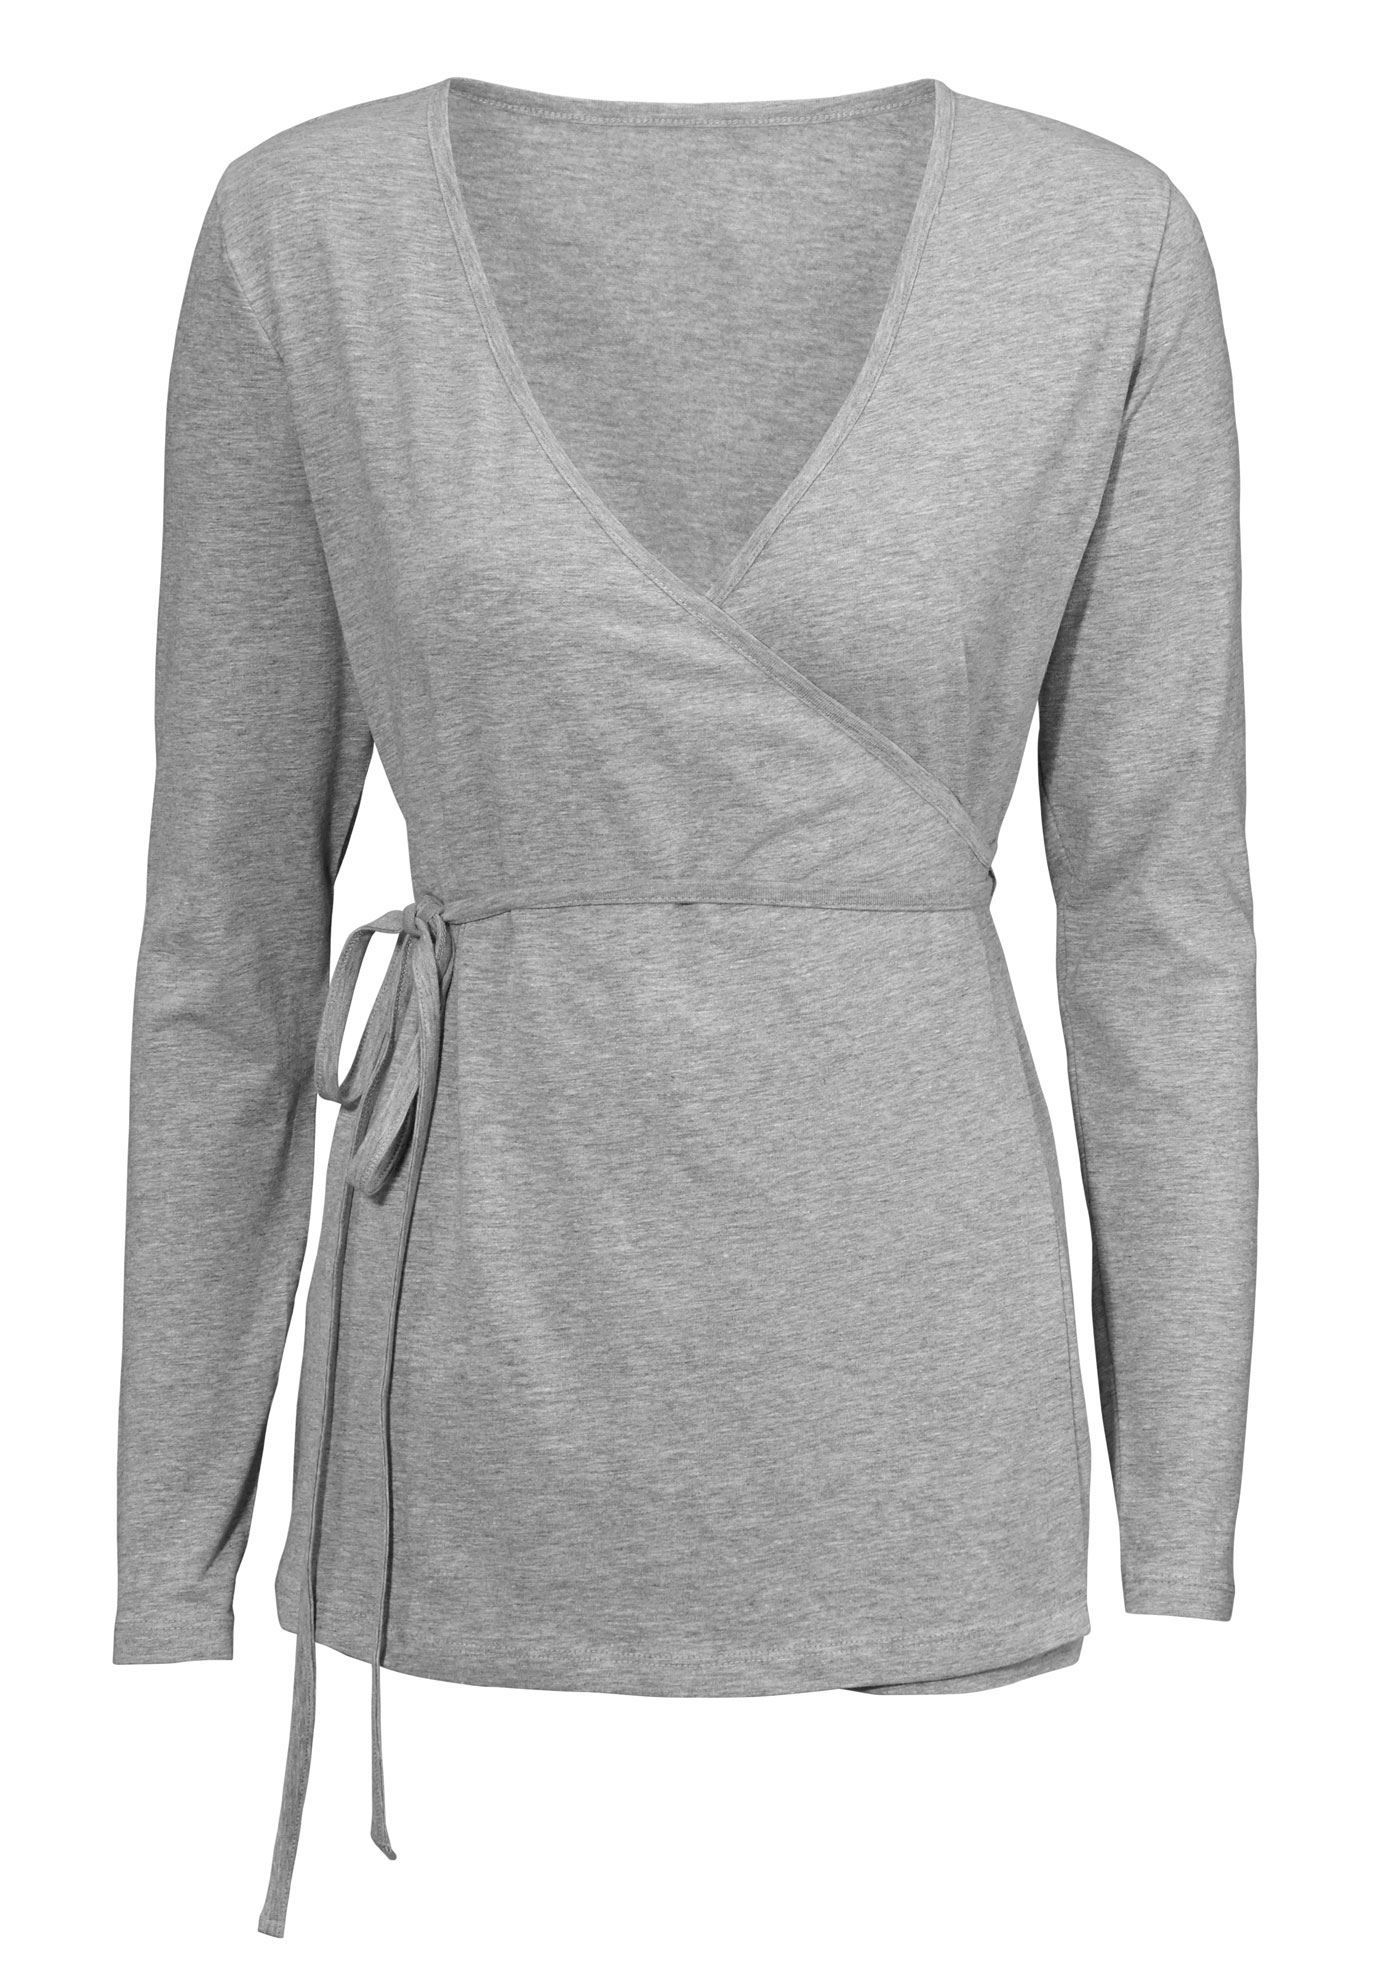 ae93b6154b6d Knit wrap sleep cardigan has long sleeves and an A-line silhouette. V-neck  wrap with self tie belt. Straight bottom hem.Fabric  nbsp 85% cotton